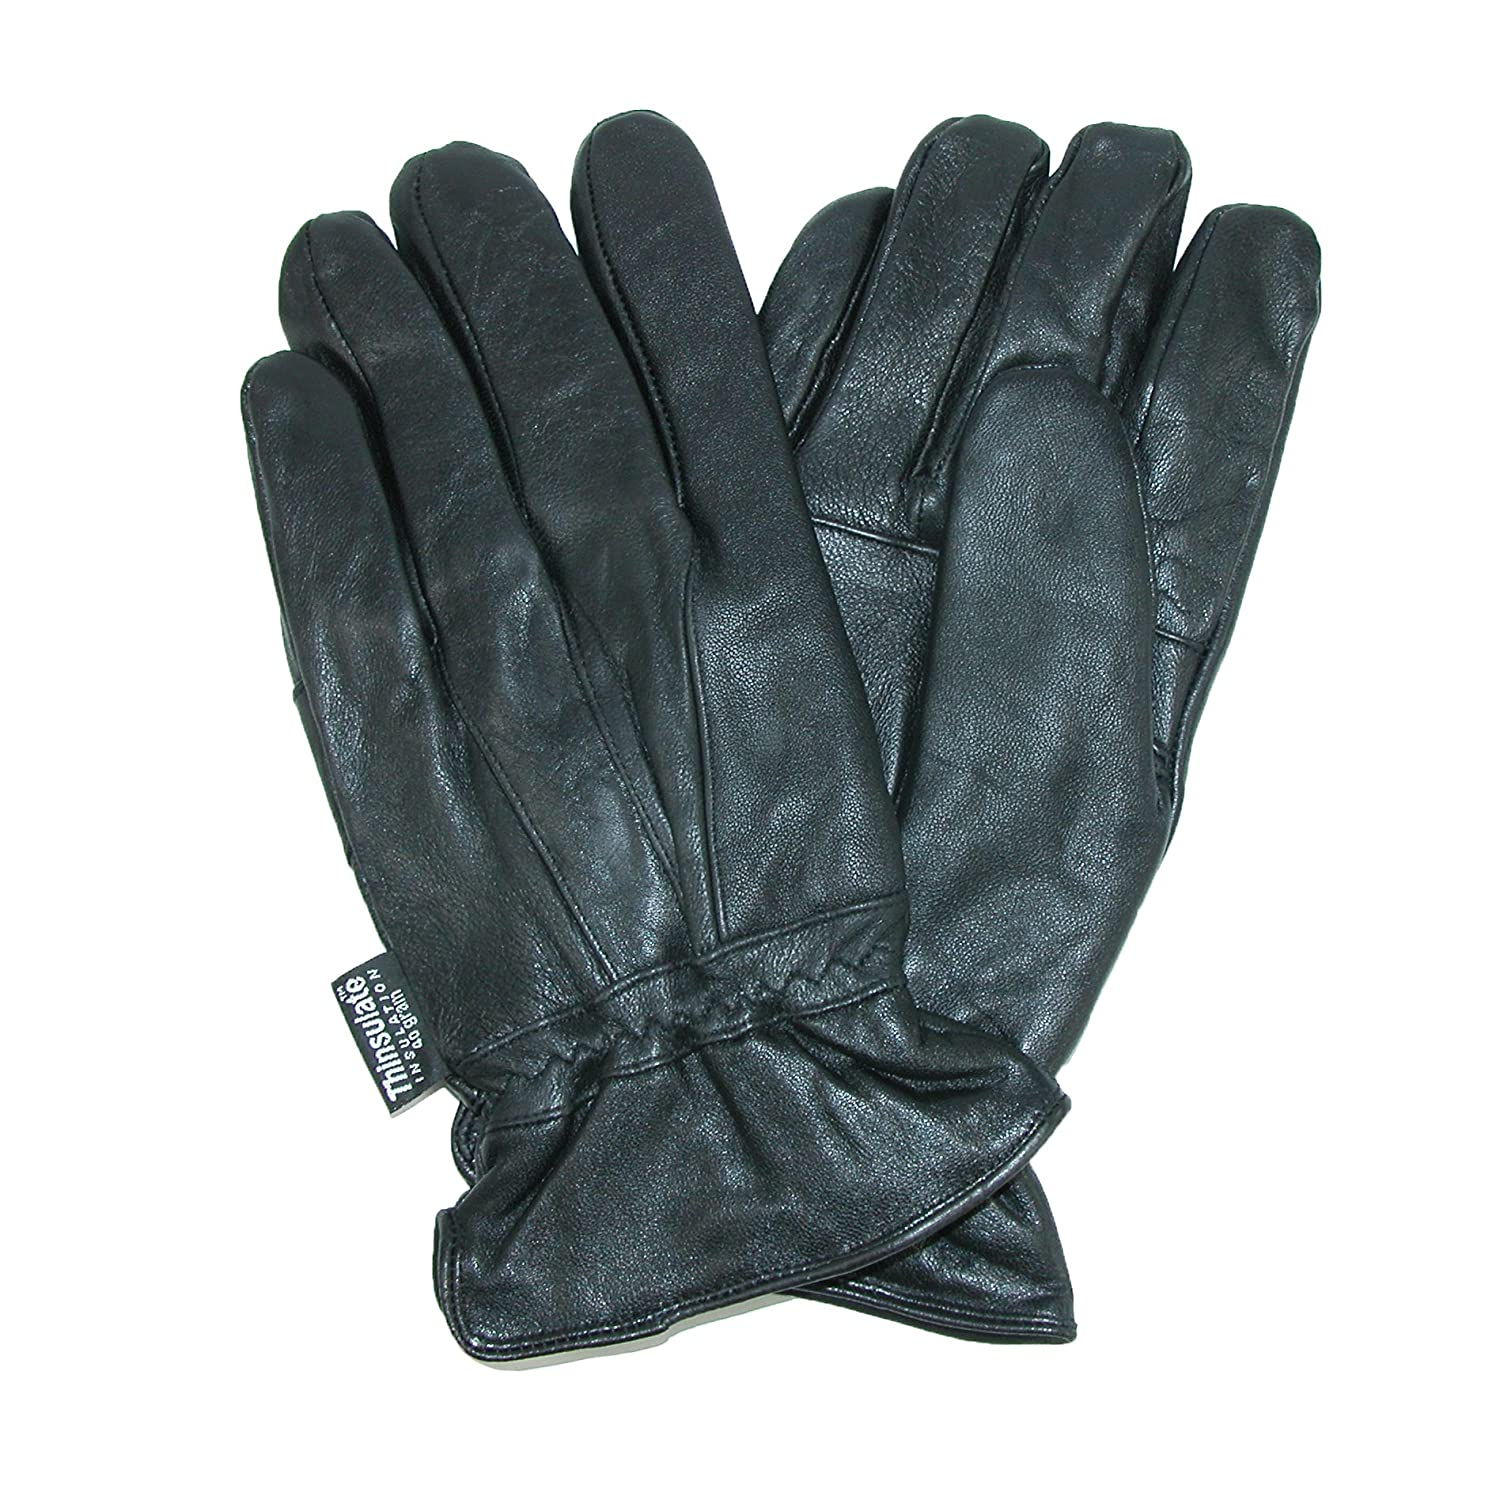 Leather Work Gloves With Thinsulate Lining - Dorfman pacific mens leather thinsulate lined water repellent winter gloves small medium at amazon men s clothing store cold weather gloves